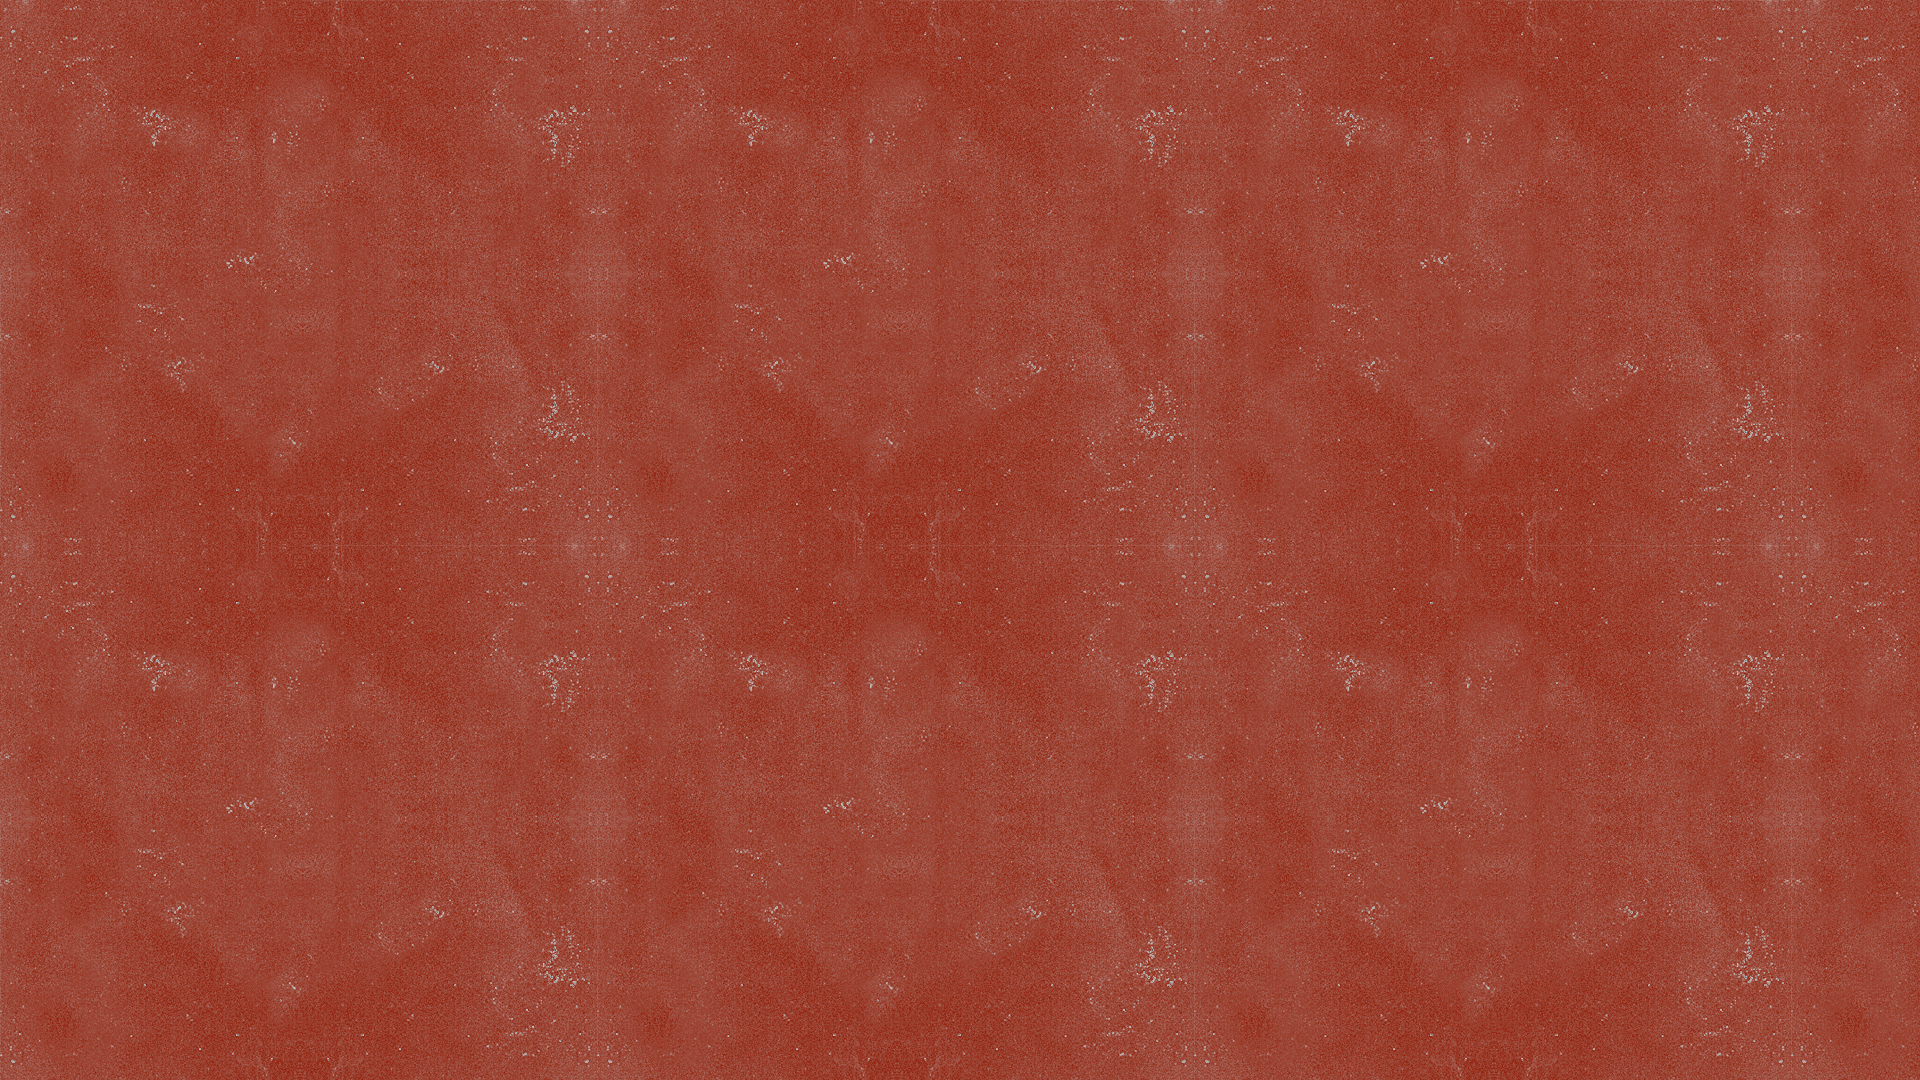 concrete-wall-2-1920x1080.png